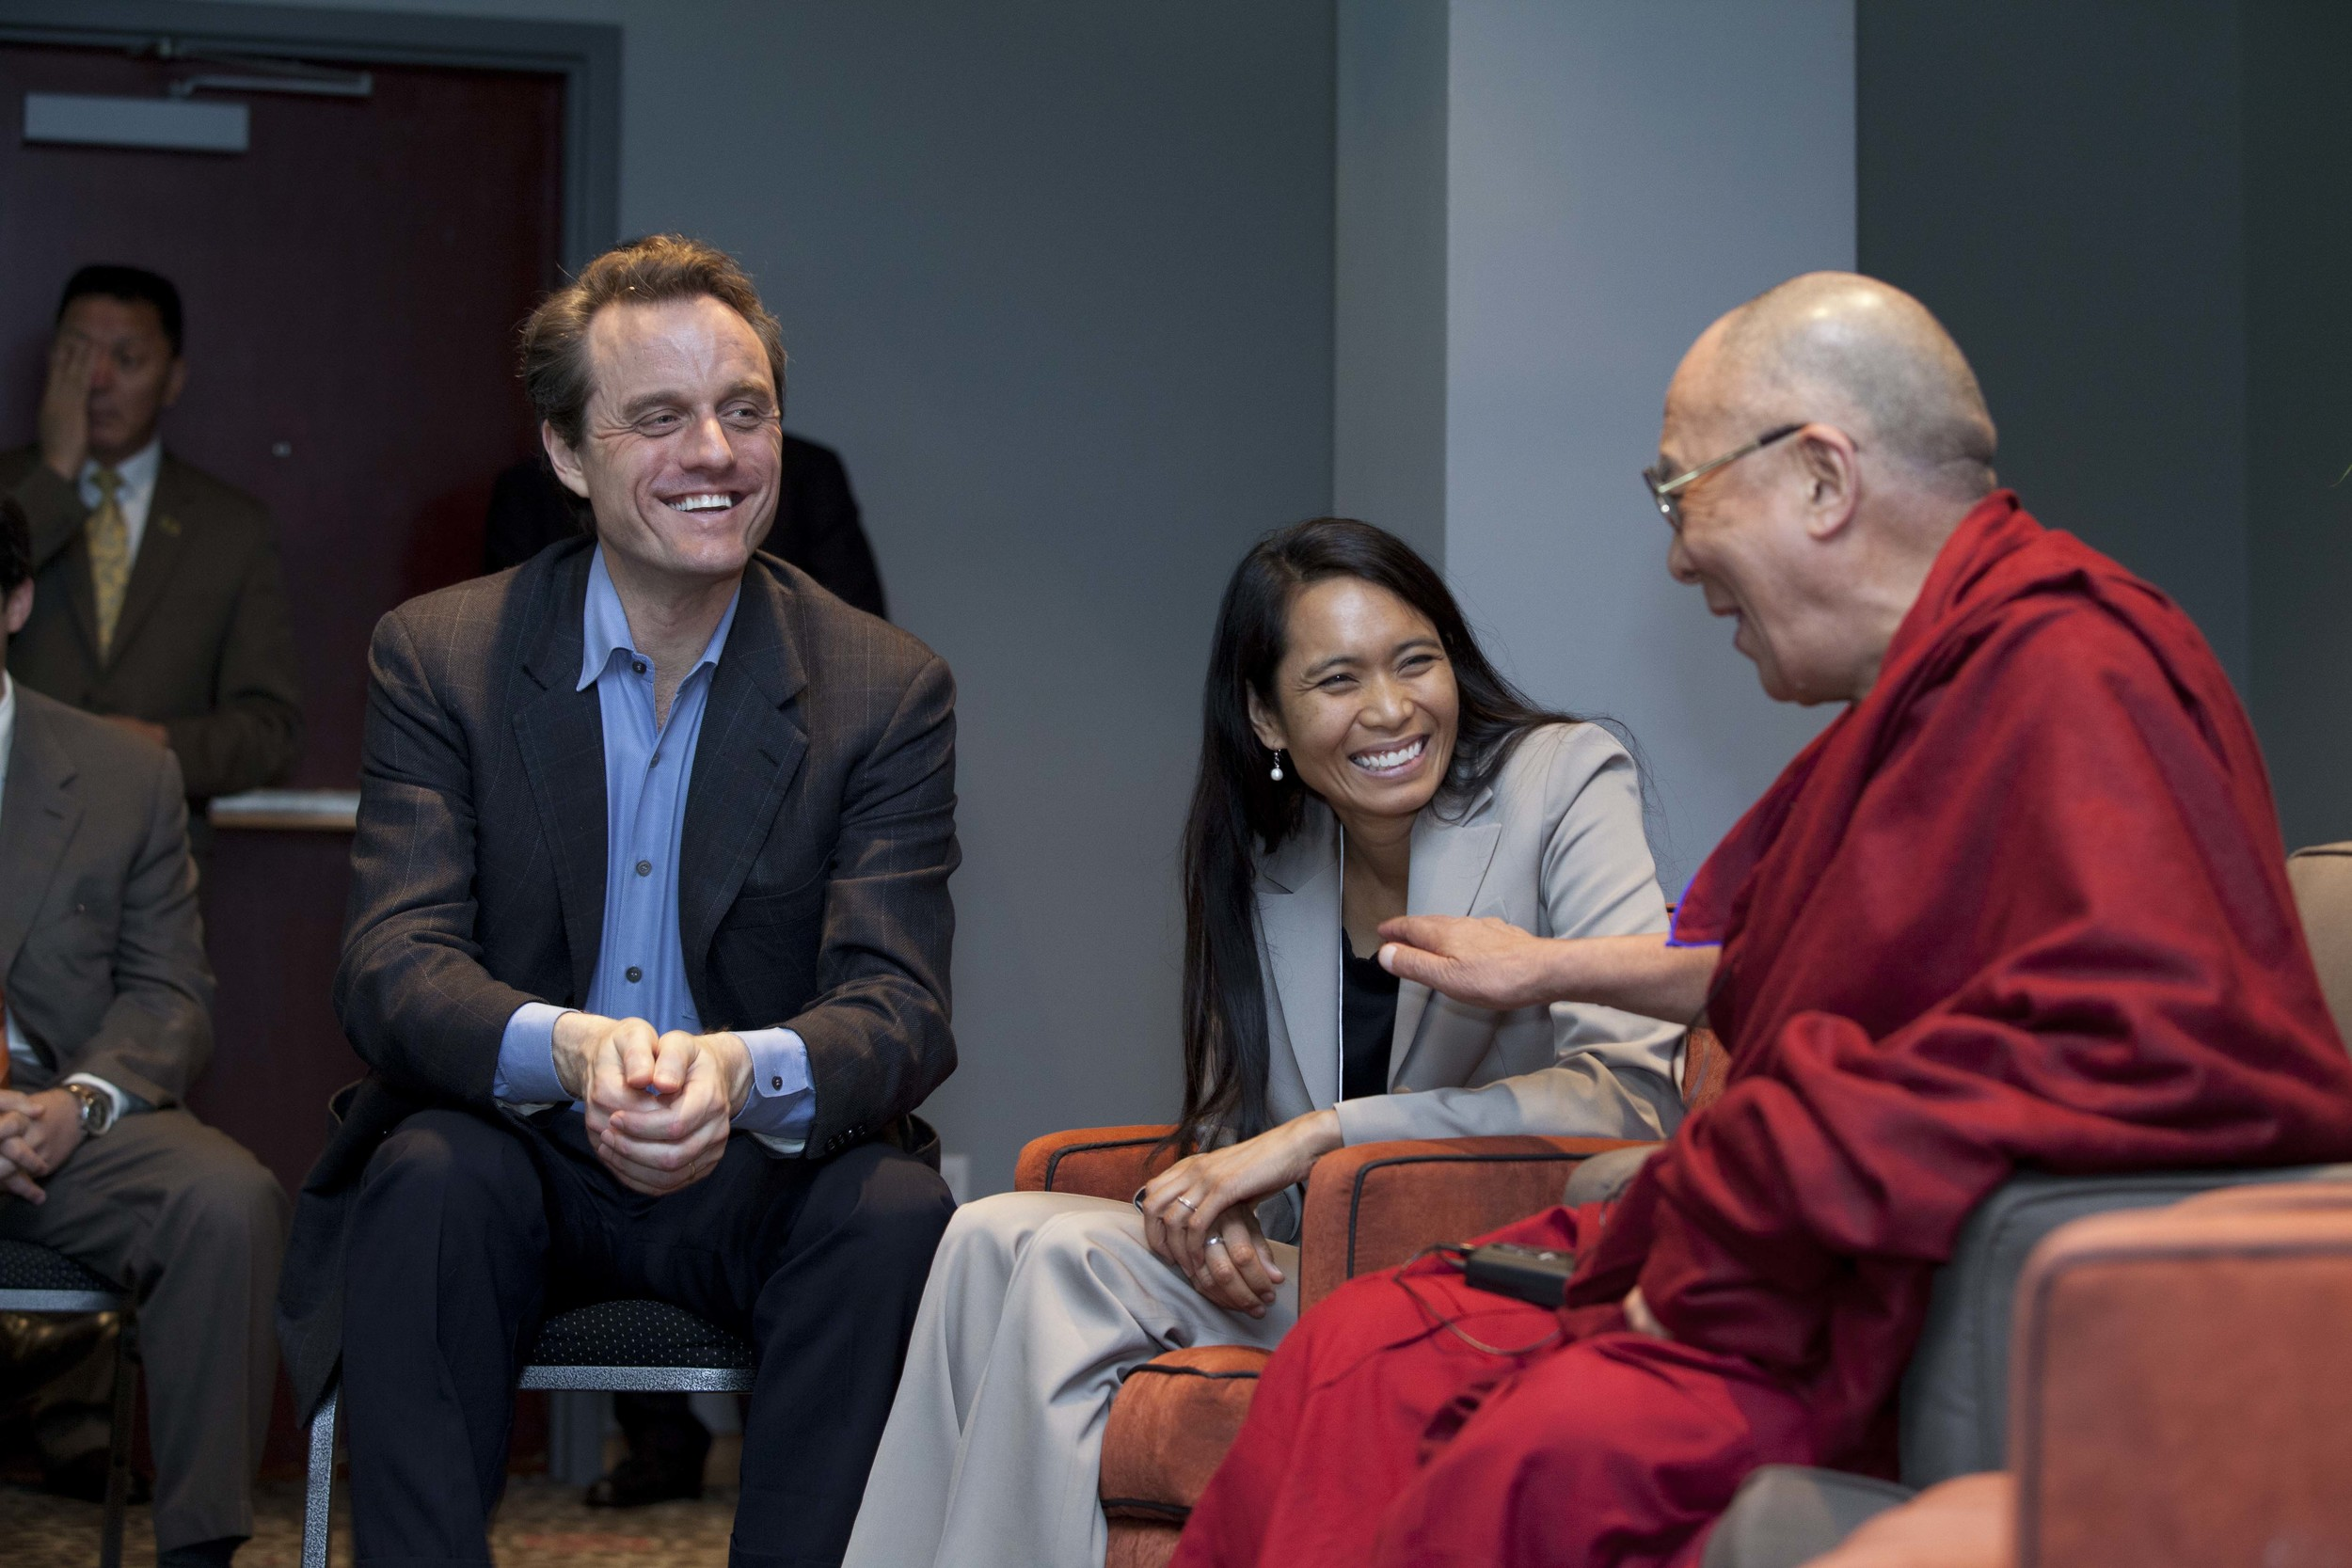 Image of Dr. Michael McCullough (left), Ana Rowena McCullough (center), and His Holiness The Dalai Lama (right) sitting during a conversation